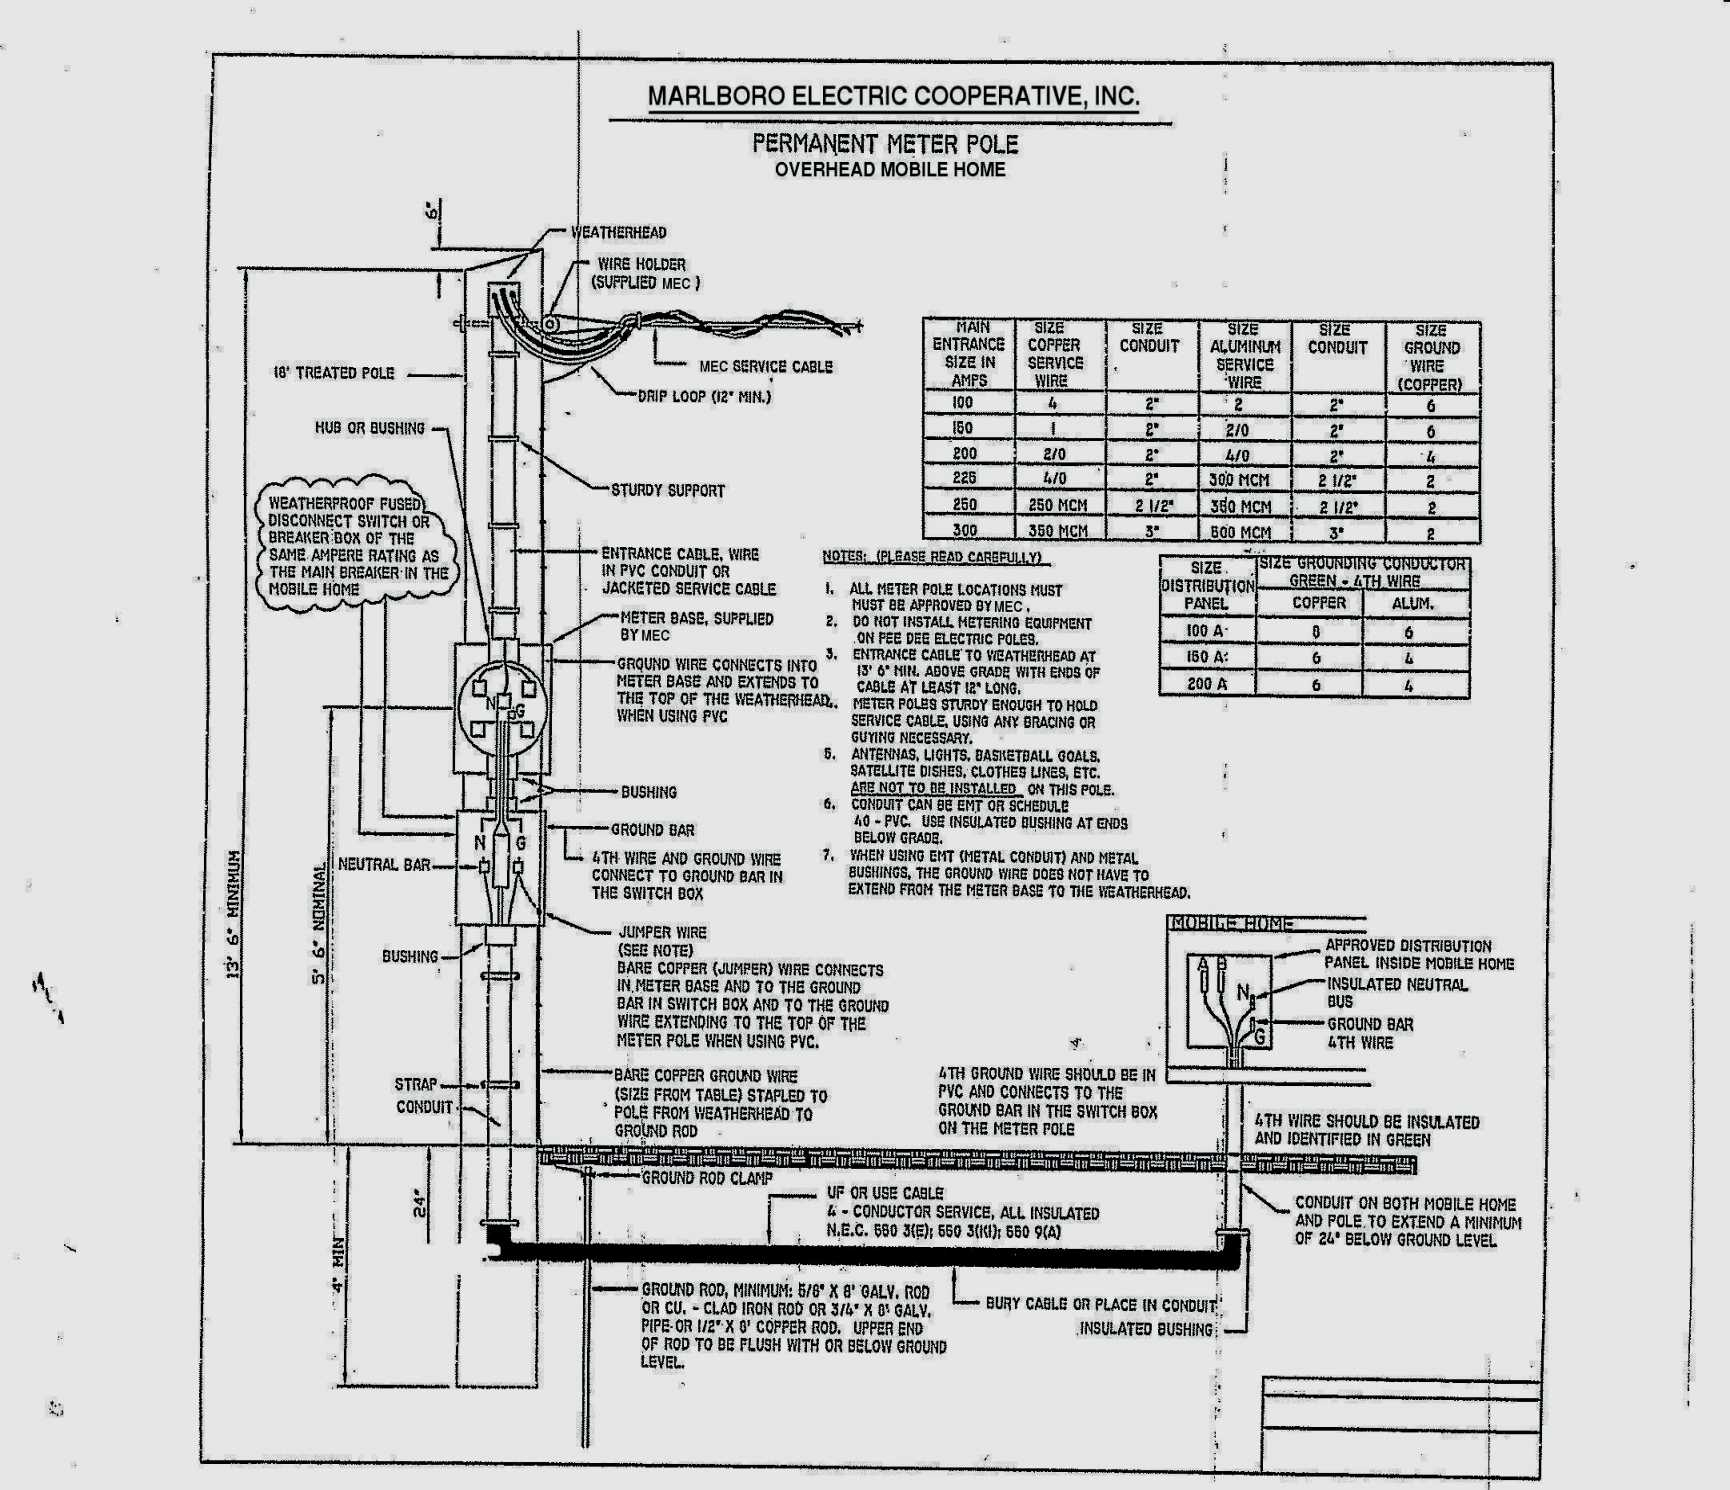 1995 Fleetwood Rv Wiring Diagram | Wiring Diagram - Bounder Motorhome Wiring Diagram